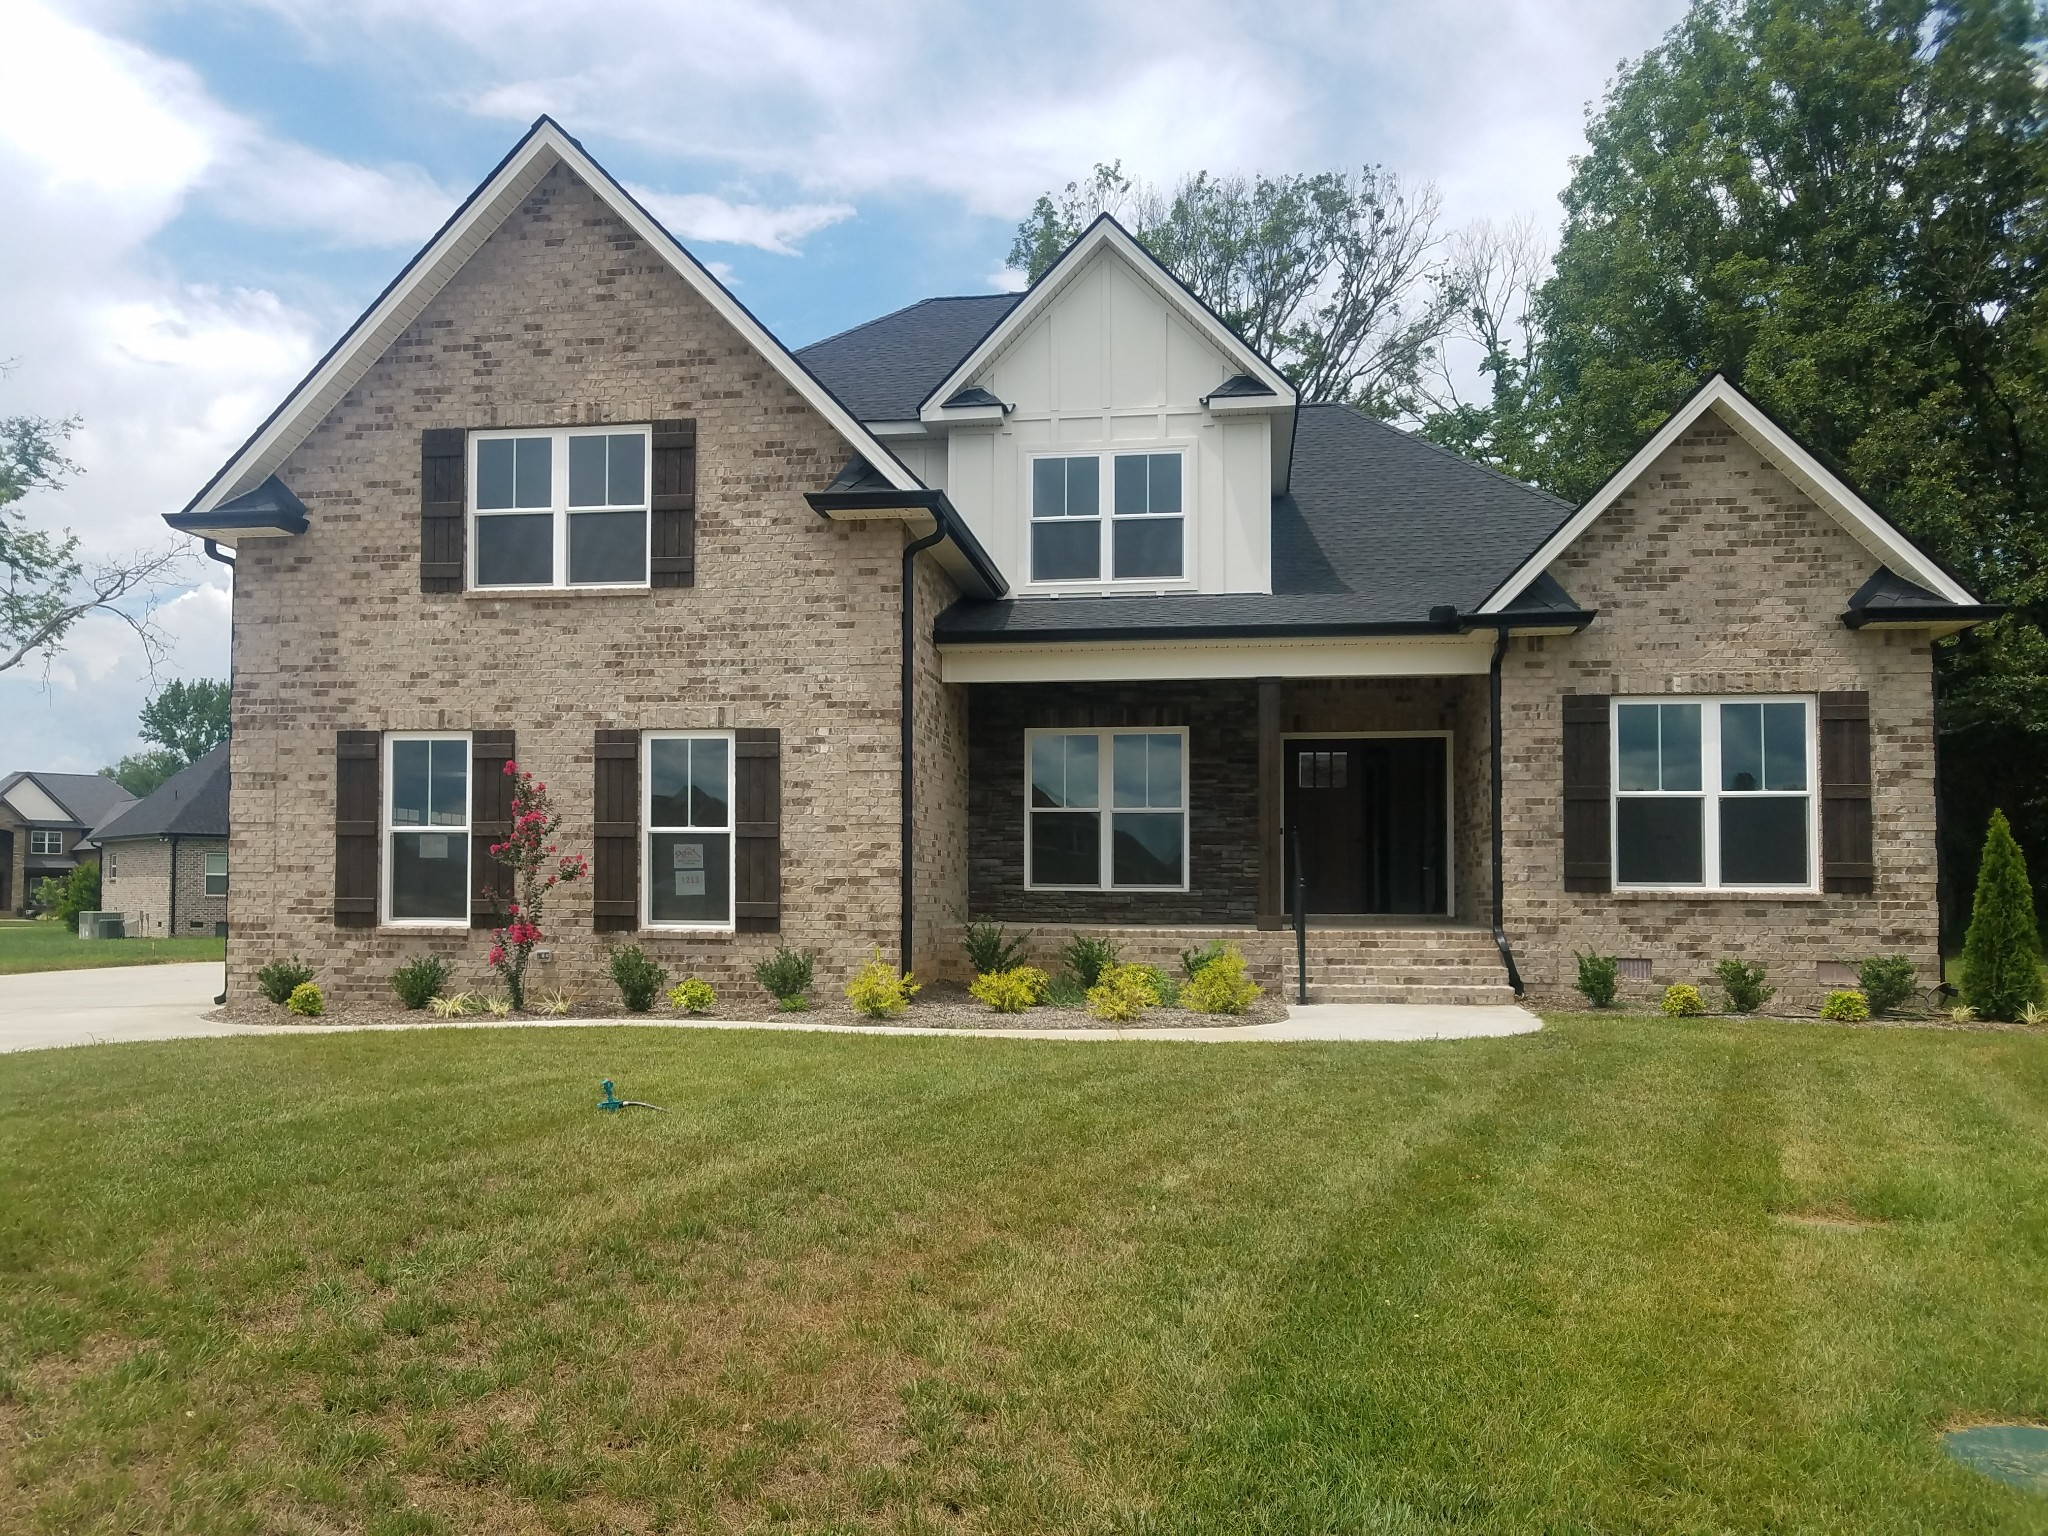 1213 Alex Walker Dr Property Photo - Christiana, TN real estate listing